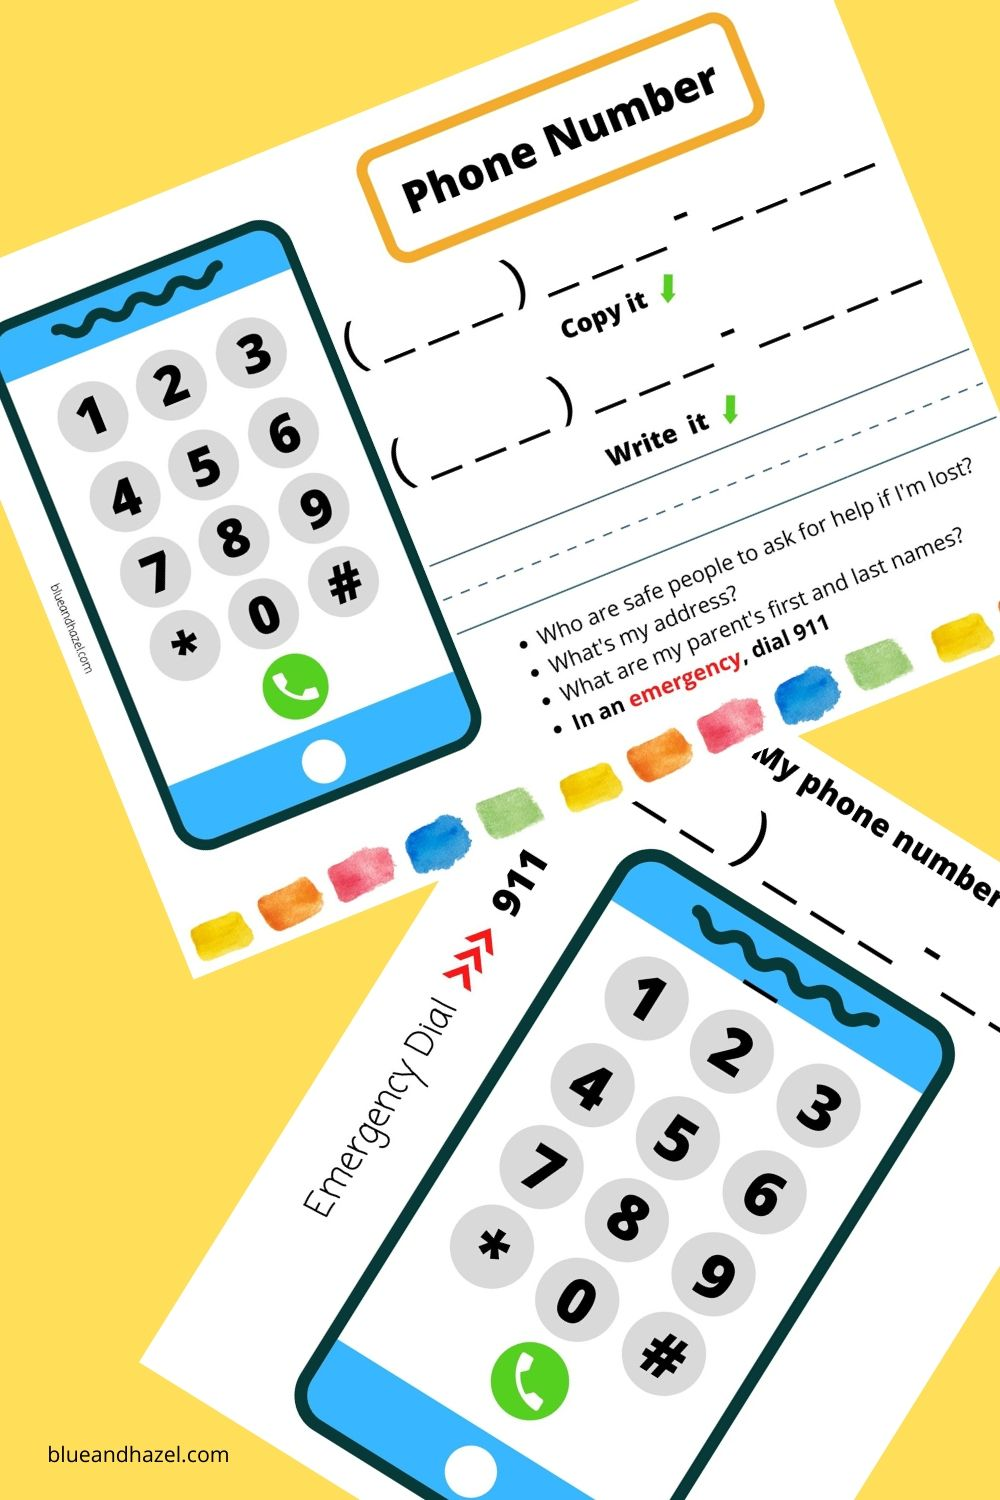 Phone Number Practice Printable Sheet: A perfect homeschool preschool activity on safety. Kids learn to memorize their phone number, press the buttons, and write their phone number.